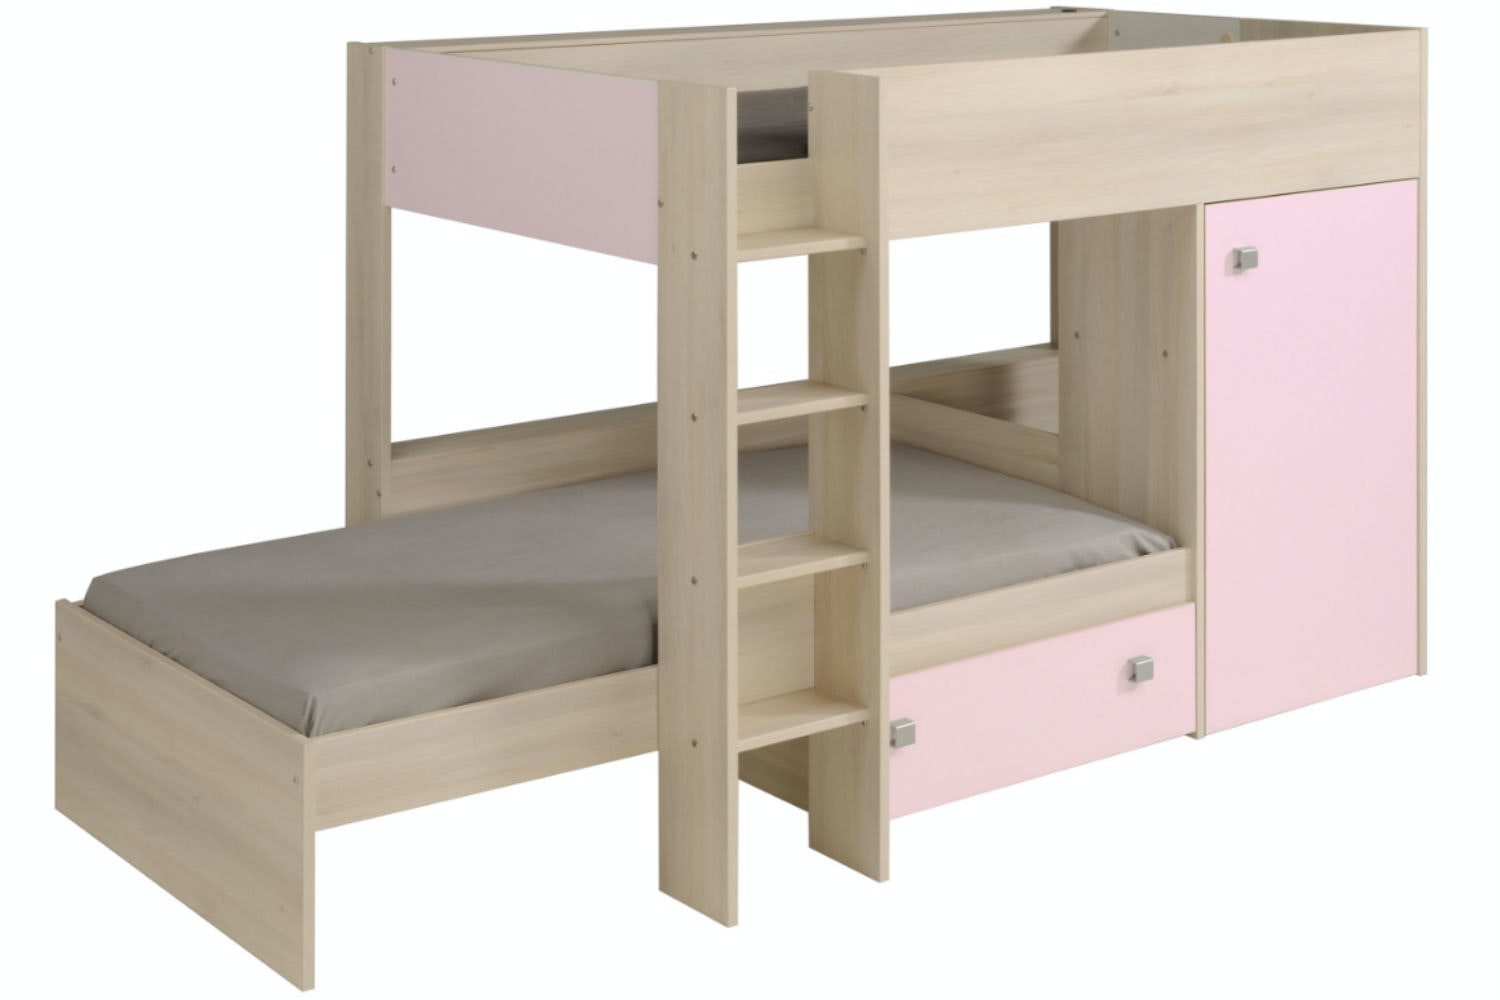 Charlie '90' Bunk Bed | 3ft